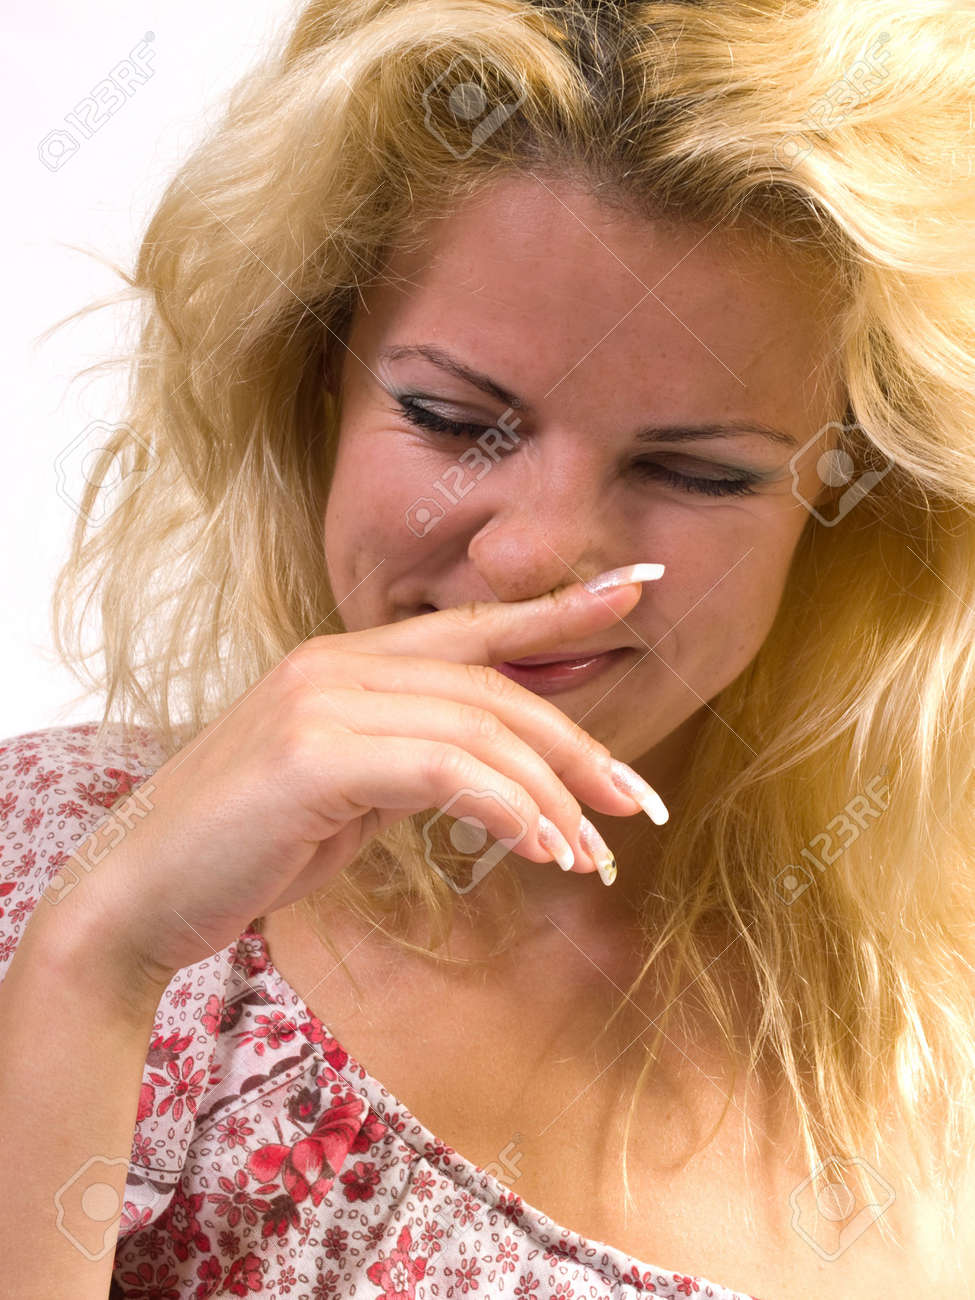 blond woman sneeze portrait on white background isolated Stock Photo - 3358046